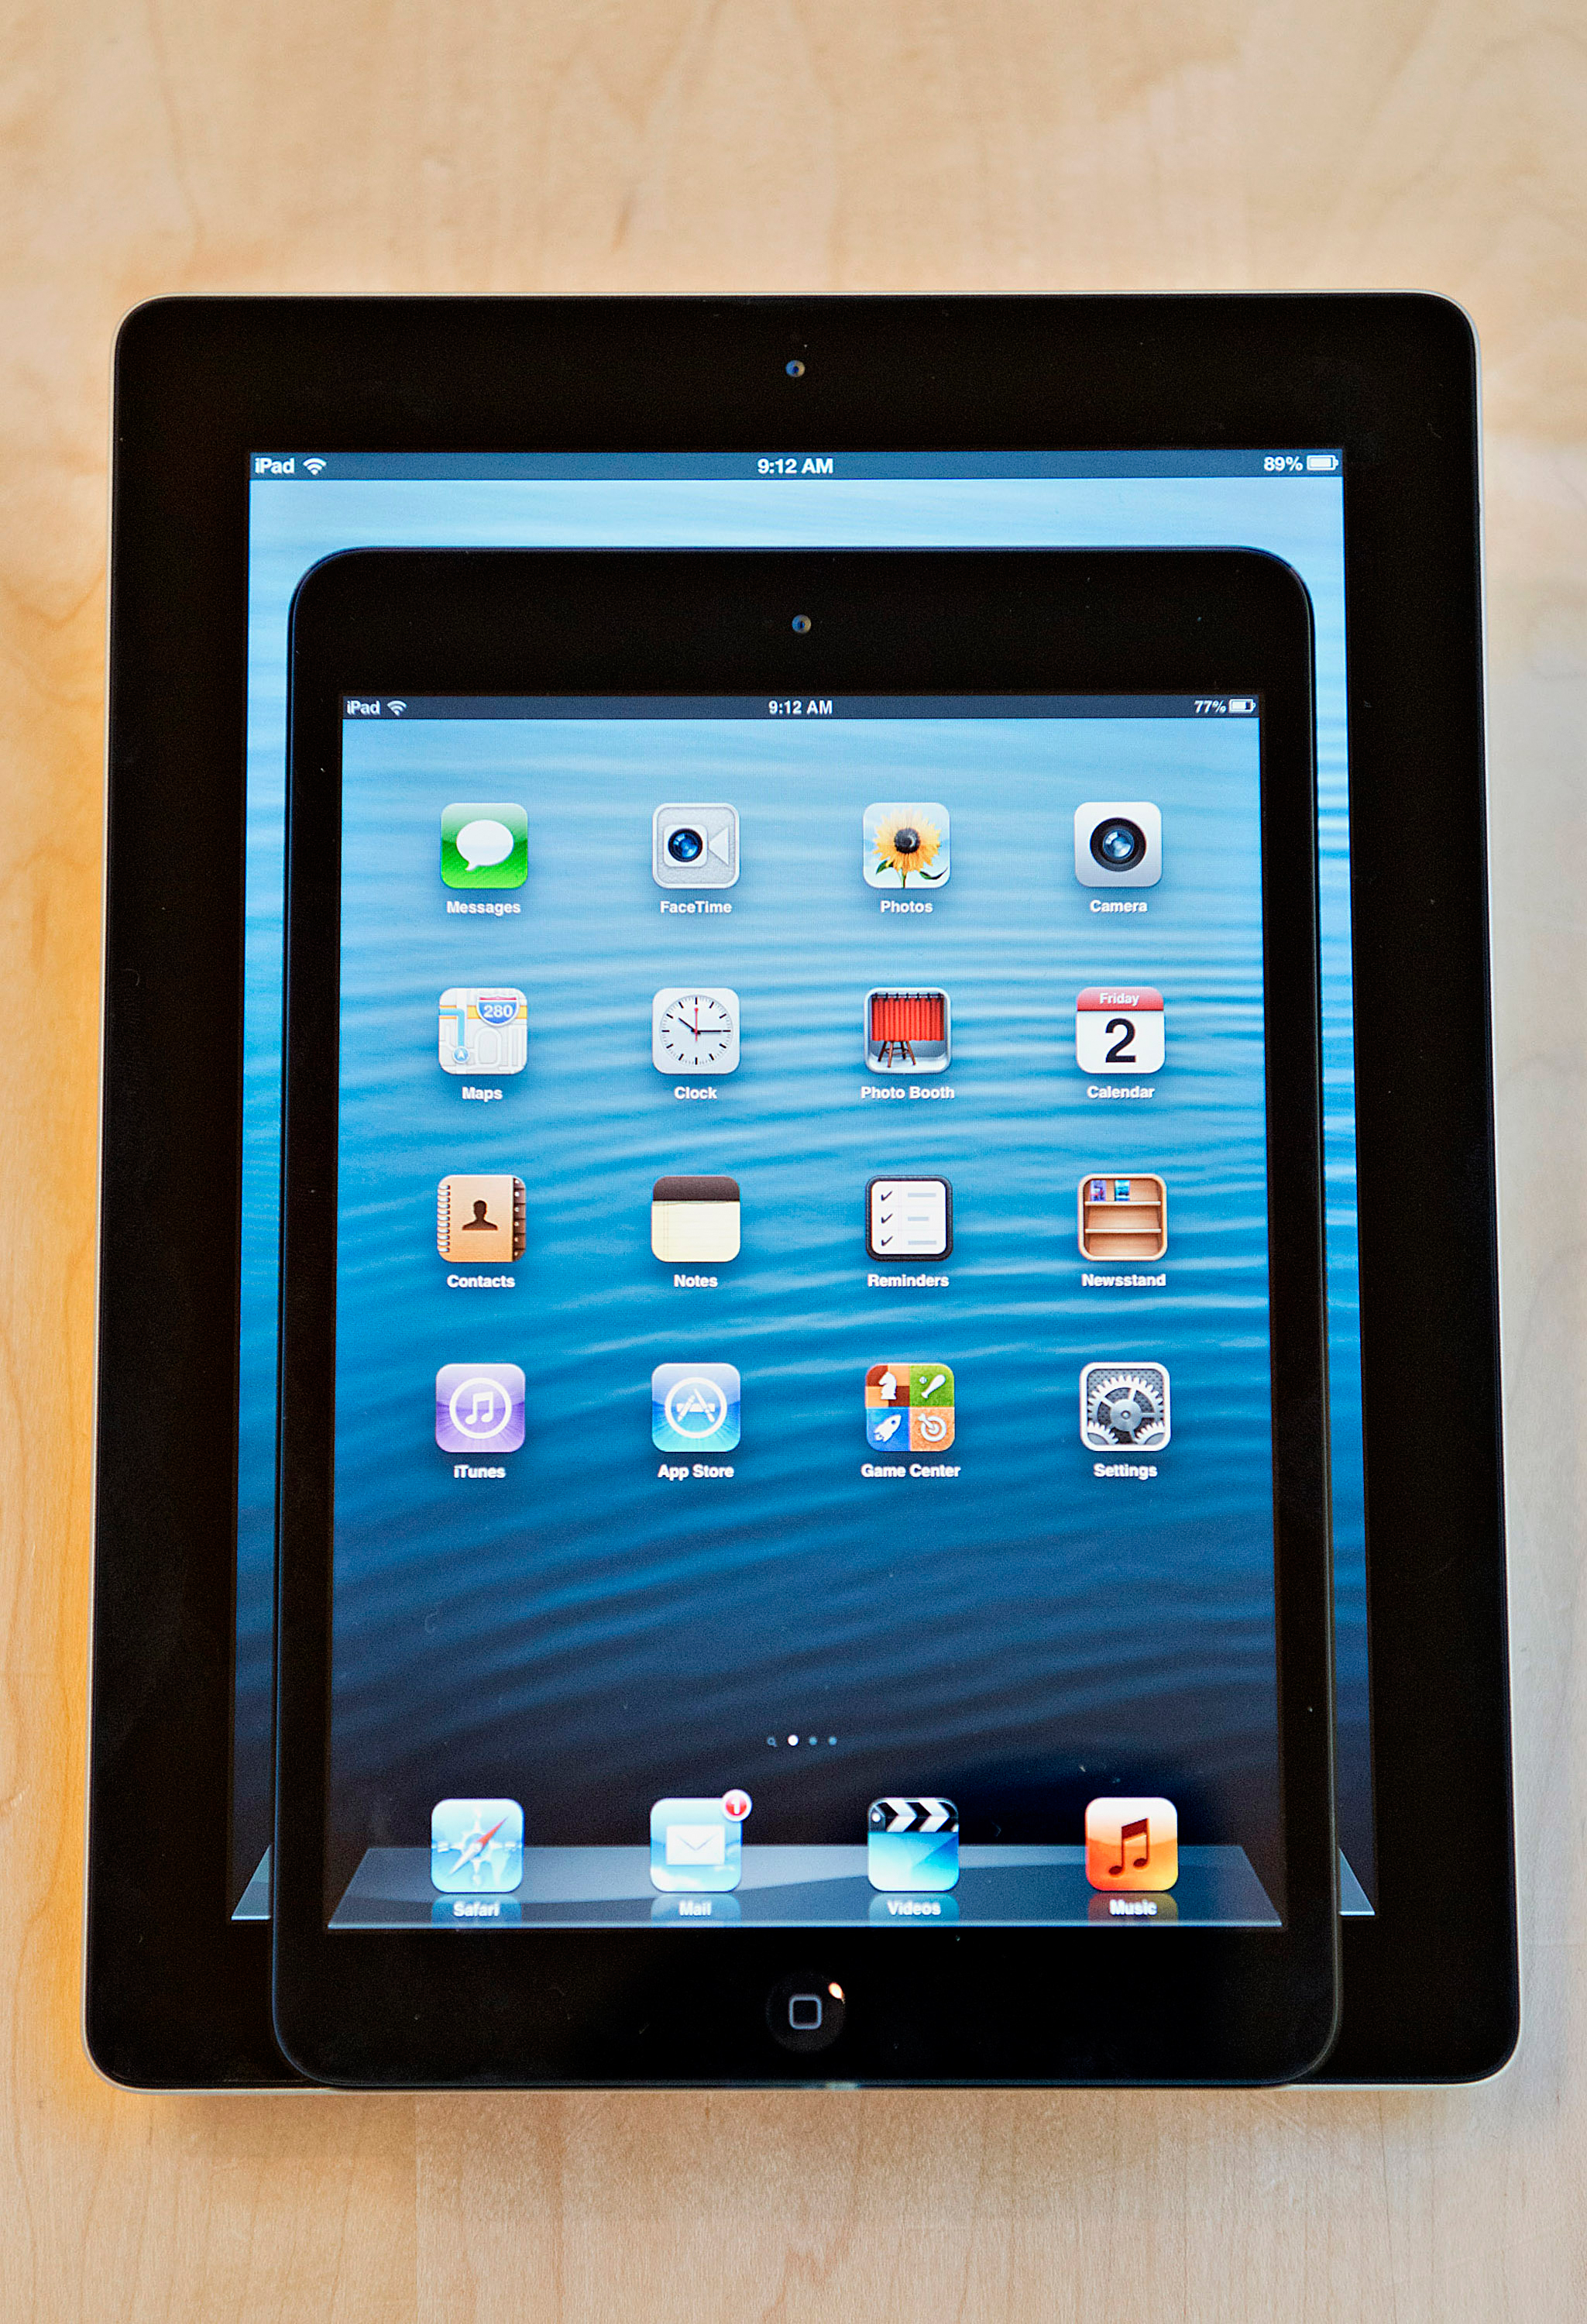 The iPad Mini, sporting a smaller 7.9 inch screen, hit store shelves on November 2, 2012. The new device cost $329.